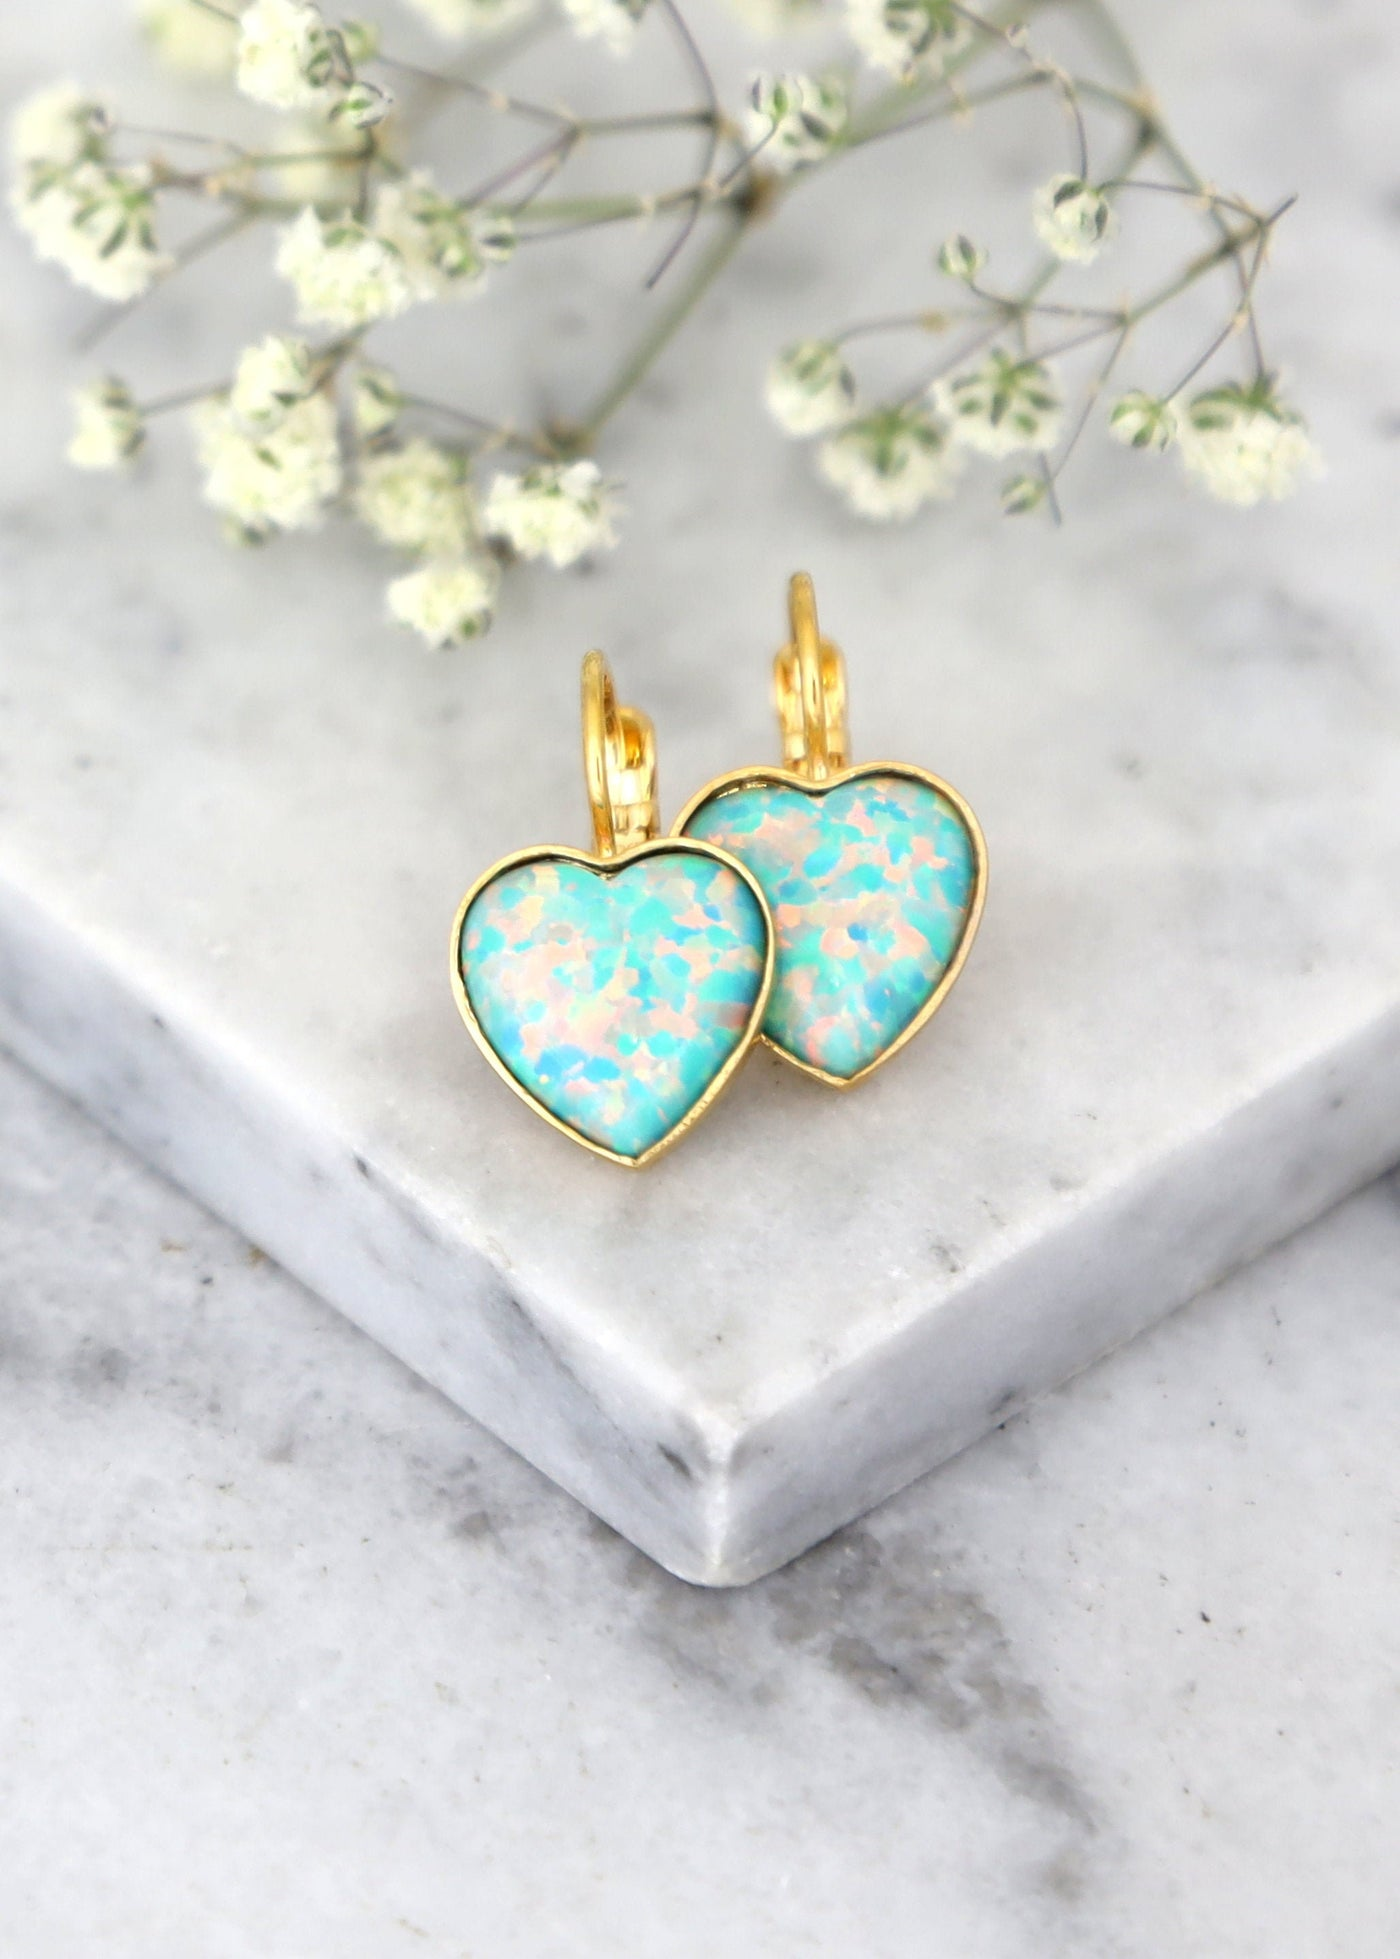 Opal Earrings, Opal Green Drop Earrings, Heart Earrings, Gift For Her, Opal Drop Earrings, Mint Opal Heart Gold Earrings, Heart Jewelry